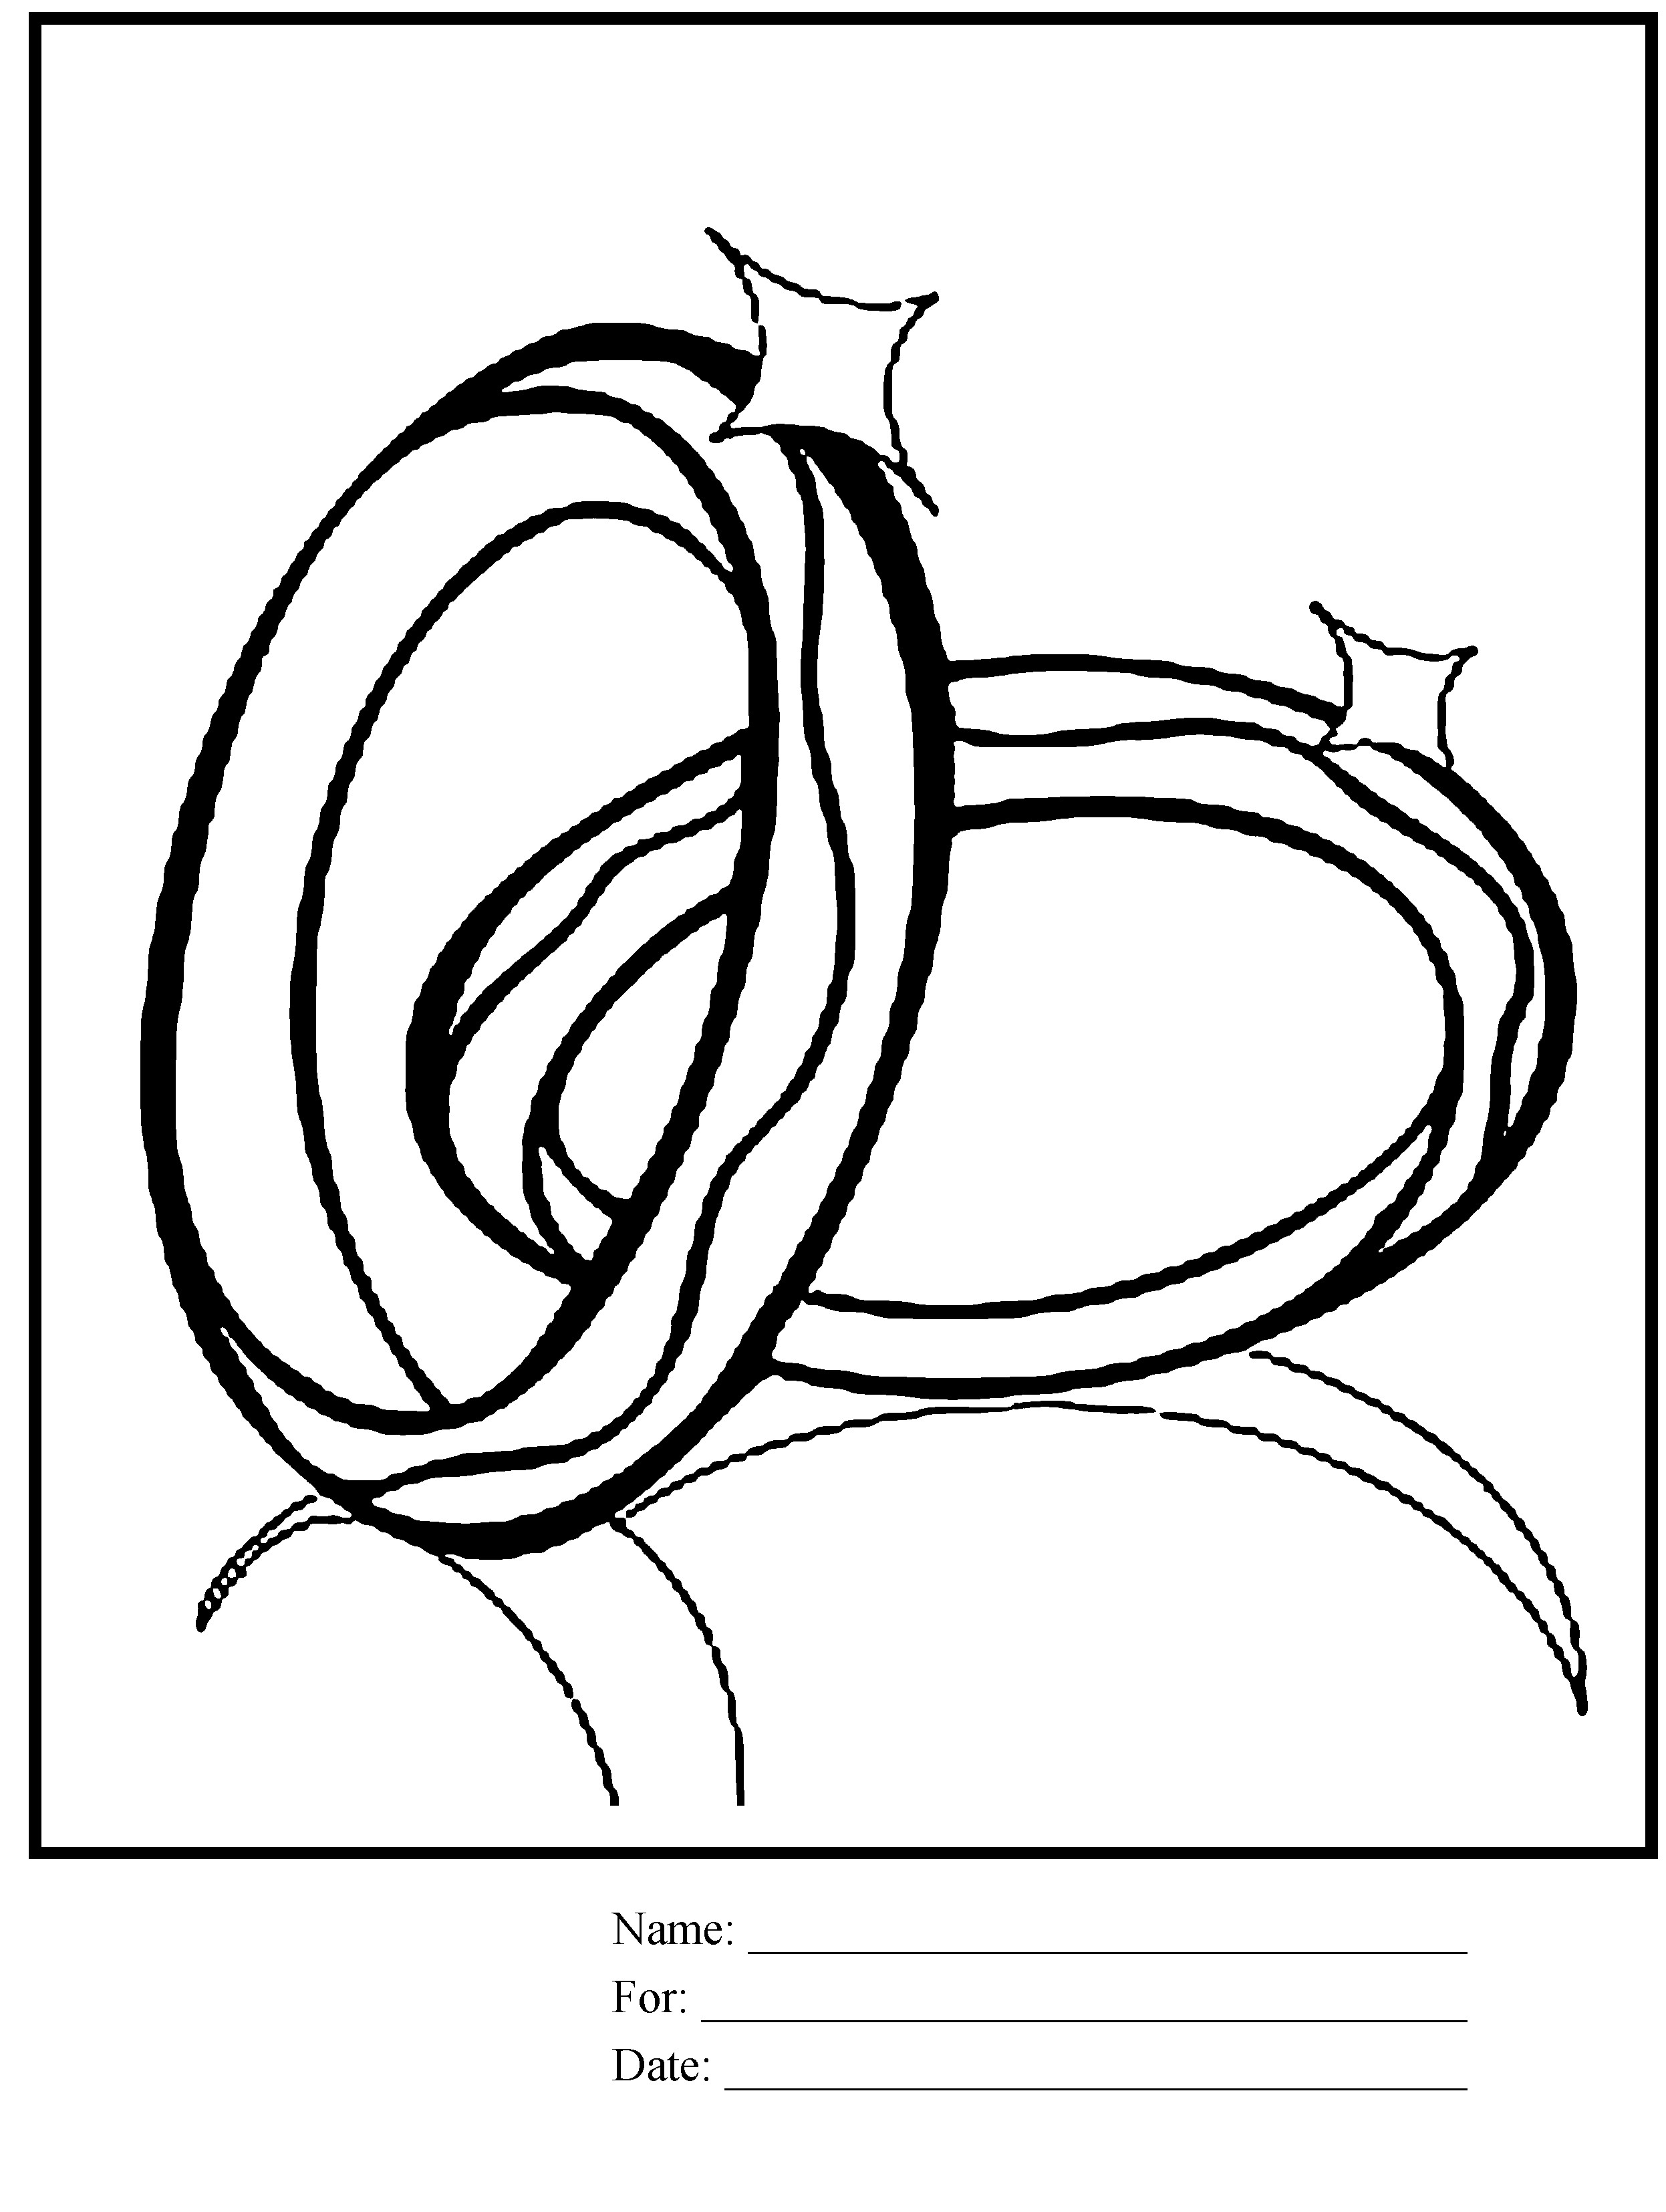 Engagement Ring Coloring Pages At Getcolorings